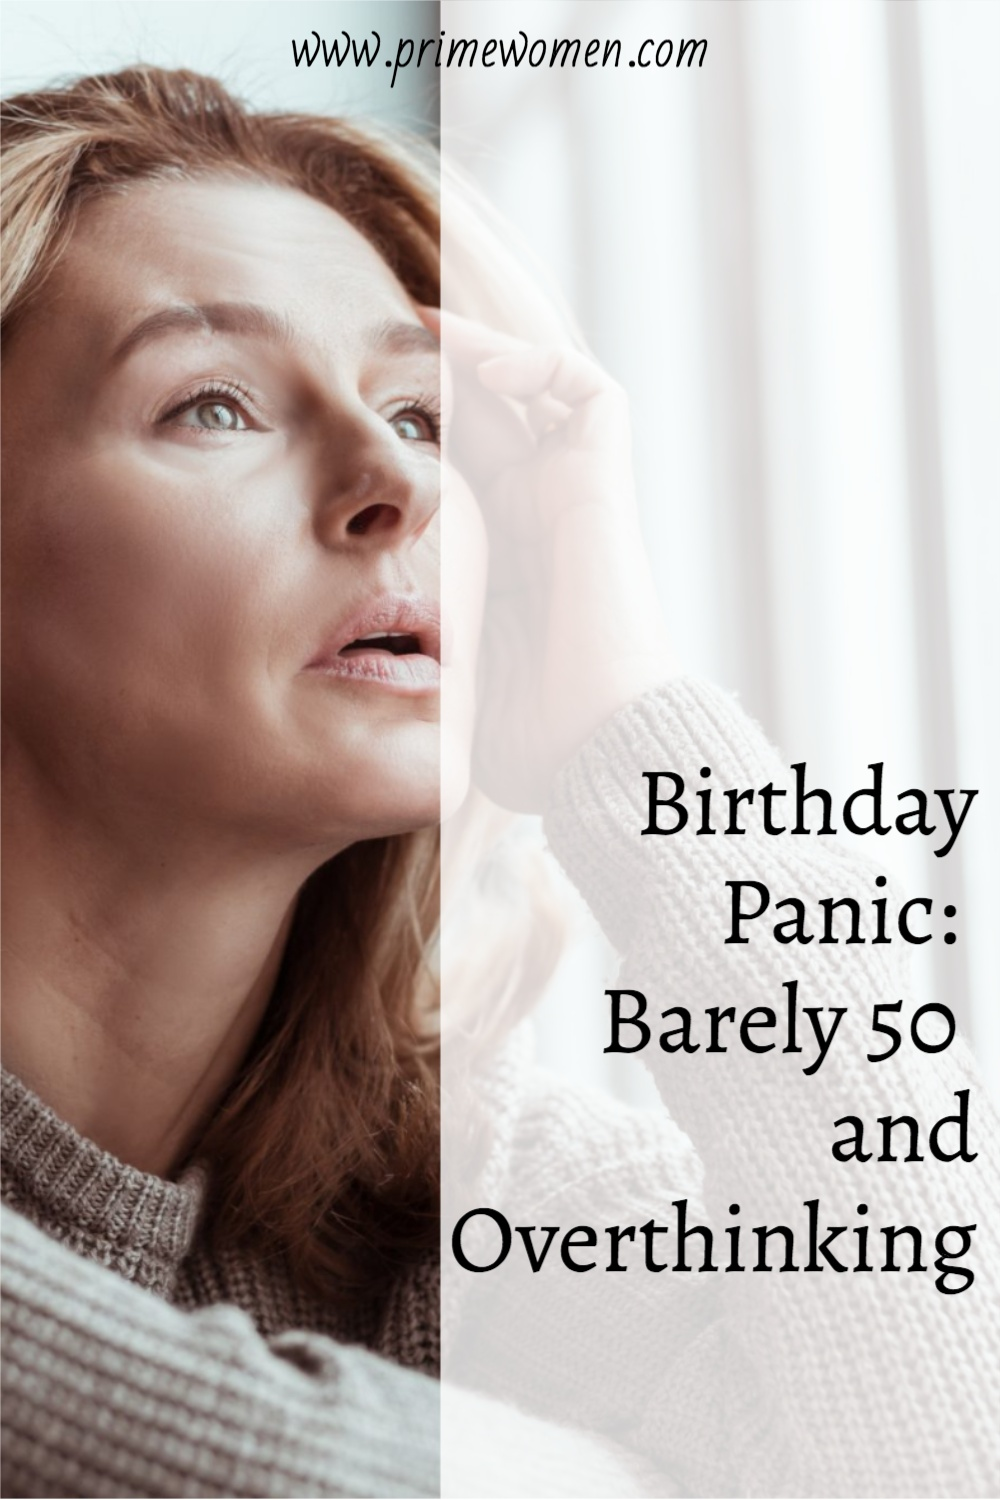 How to deal with Birthday Panic